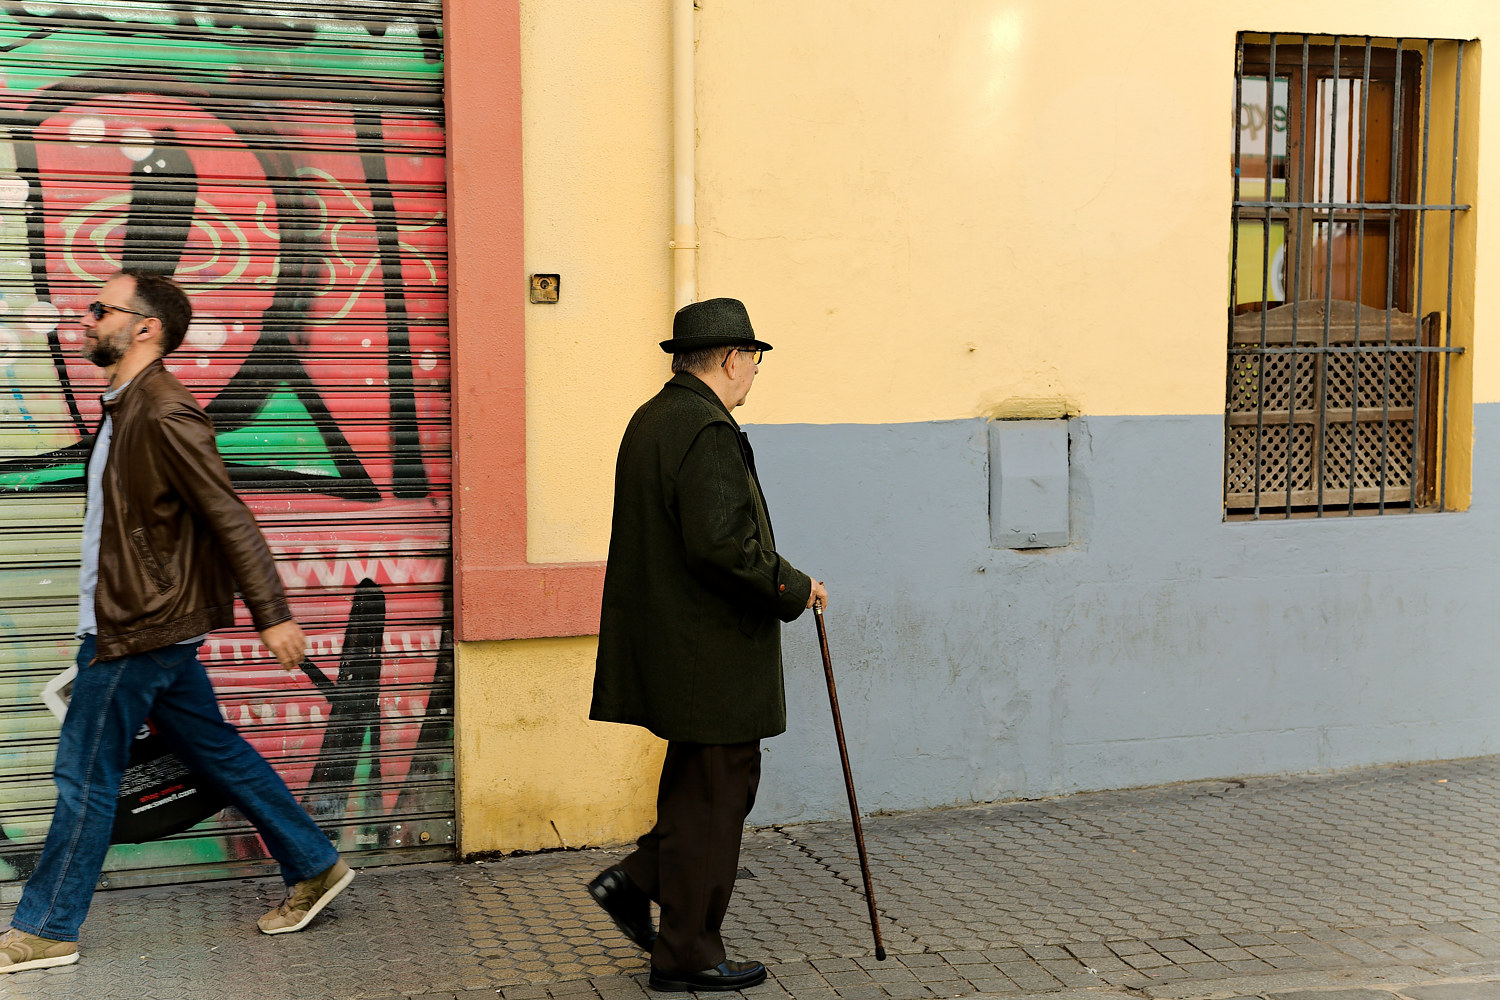 Man With a Cane Seville by Marc Brisson